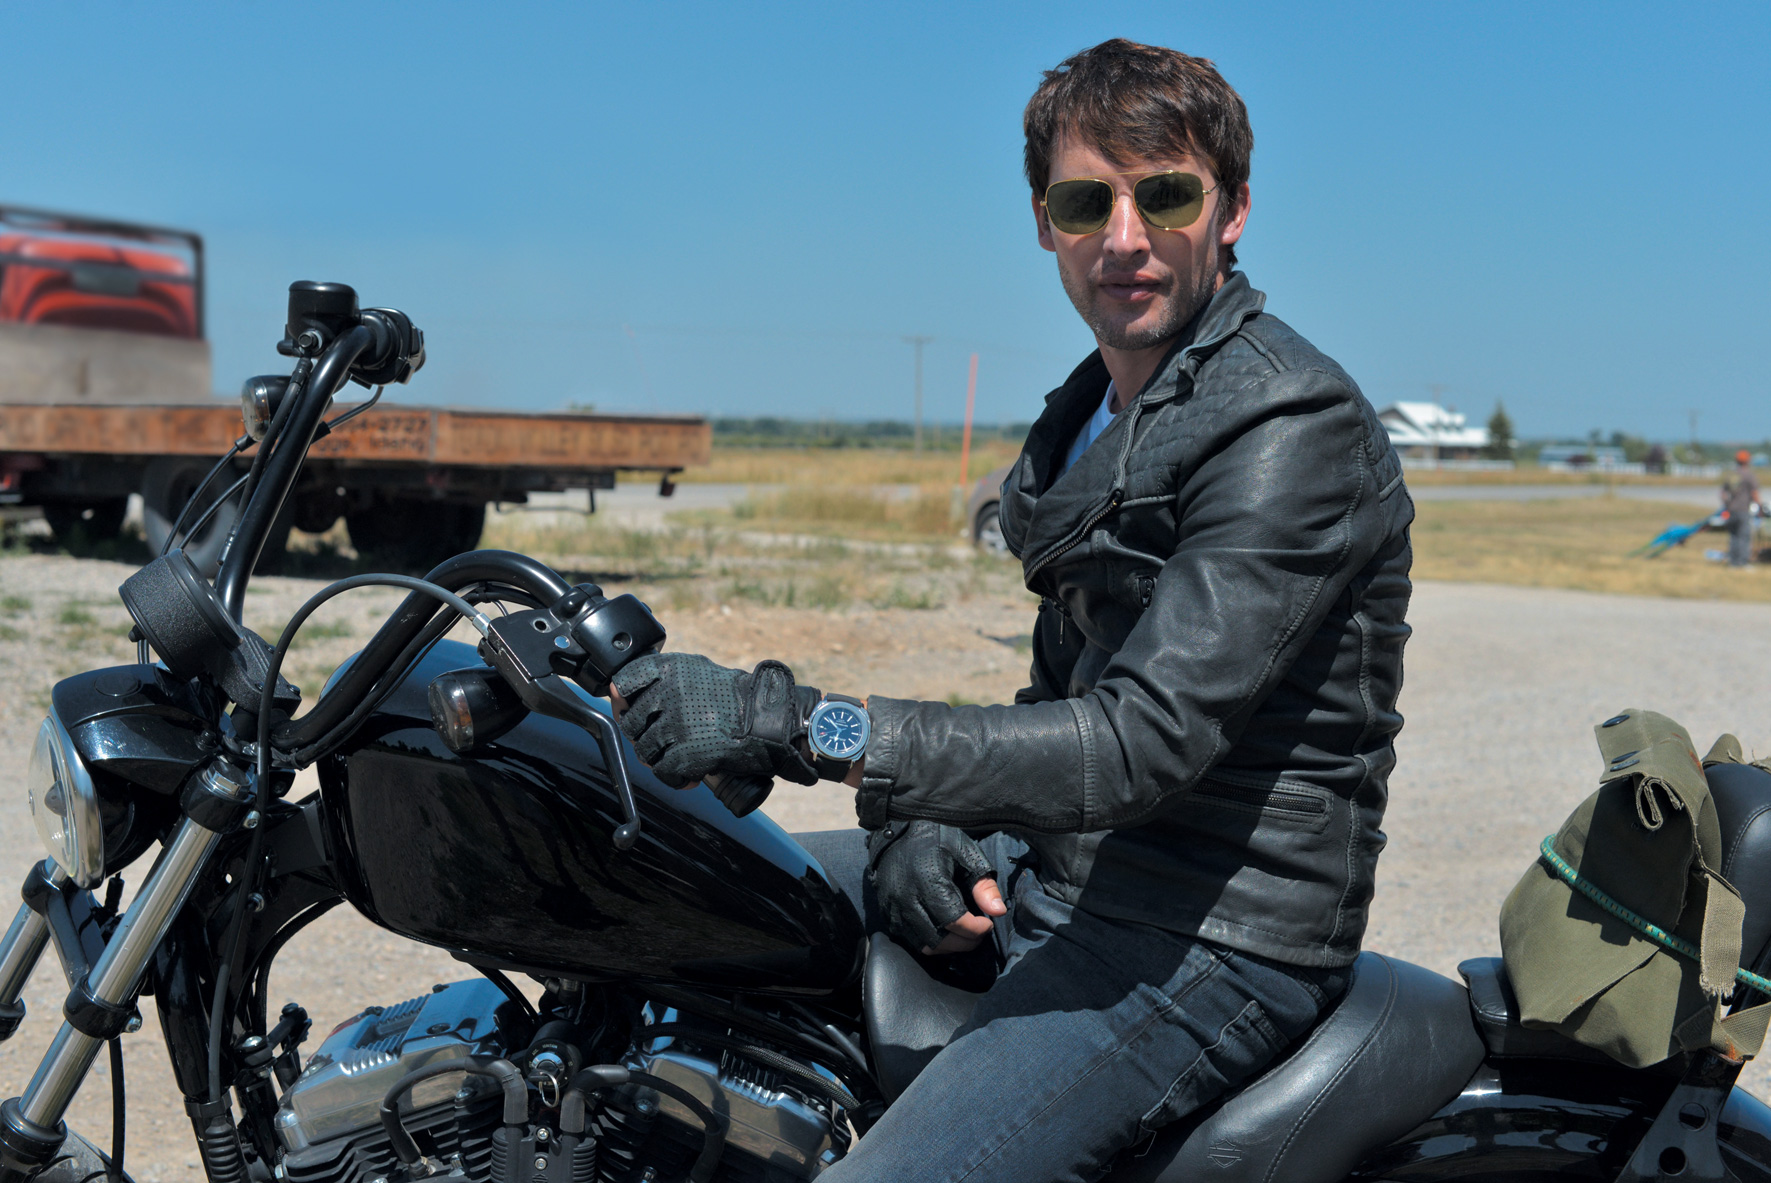 Royal Enfield Hd Wallpapers 5 James Blunt Hd Wallpapers Backgrounds Wallpaper Abyss